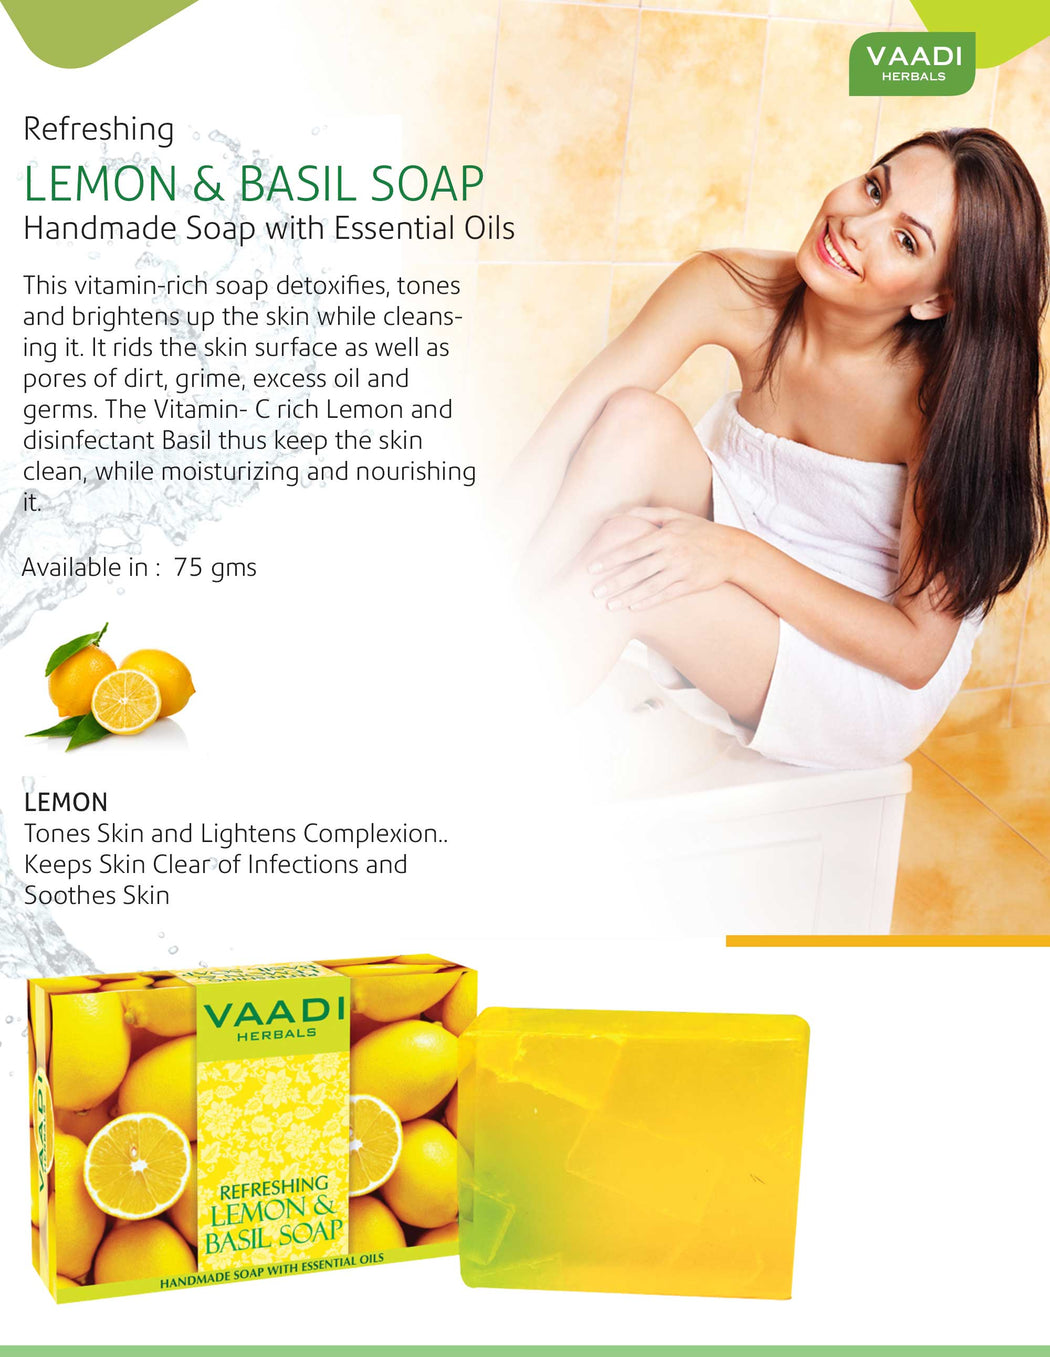 Refreshing Organic Lemon & Basil Soap - Tones & Brightens Skin (12 x 75 gms / 2.7 oz)